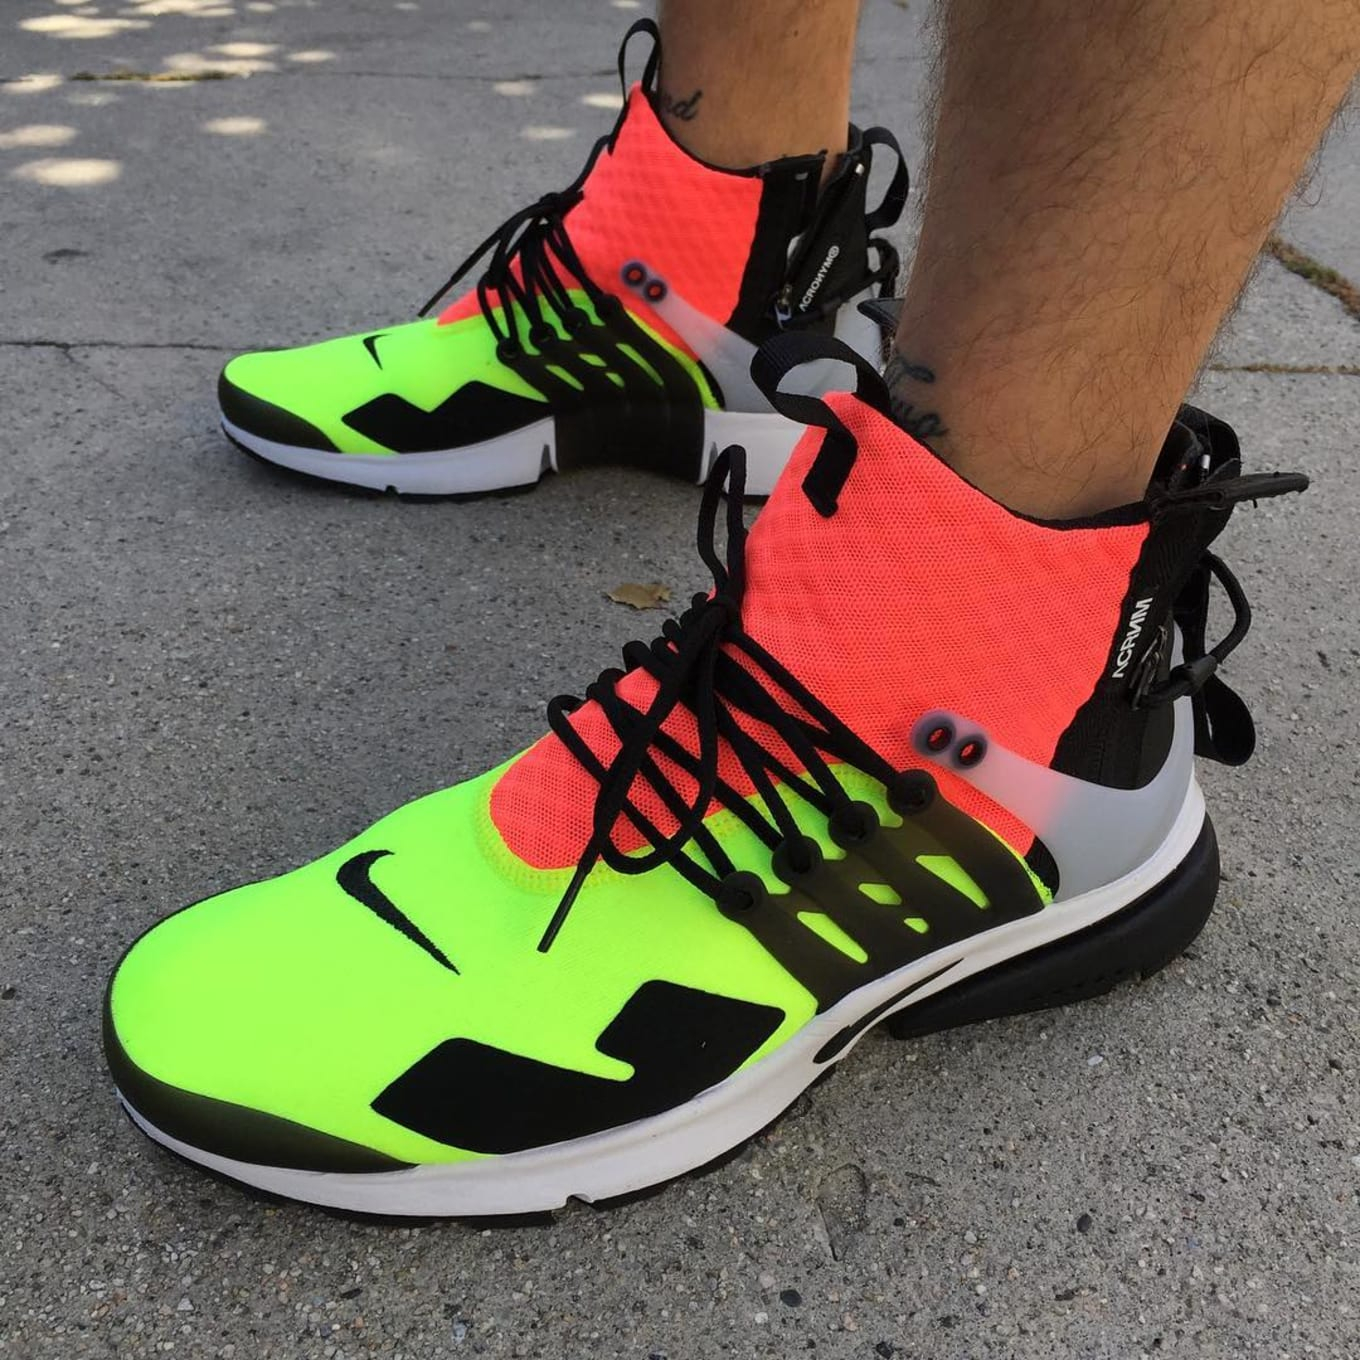 1e551be53af4 ACRONYM x Nike Air Presto On-Foot